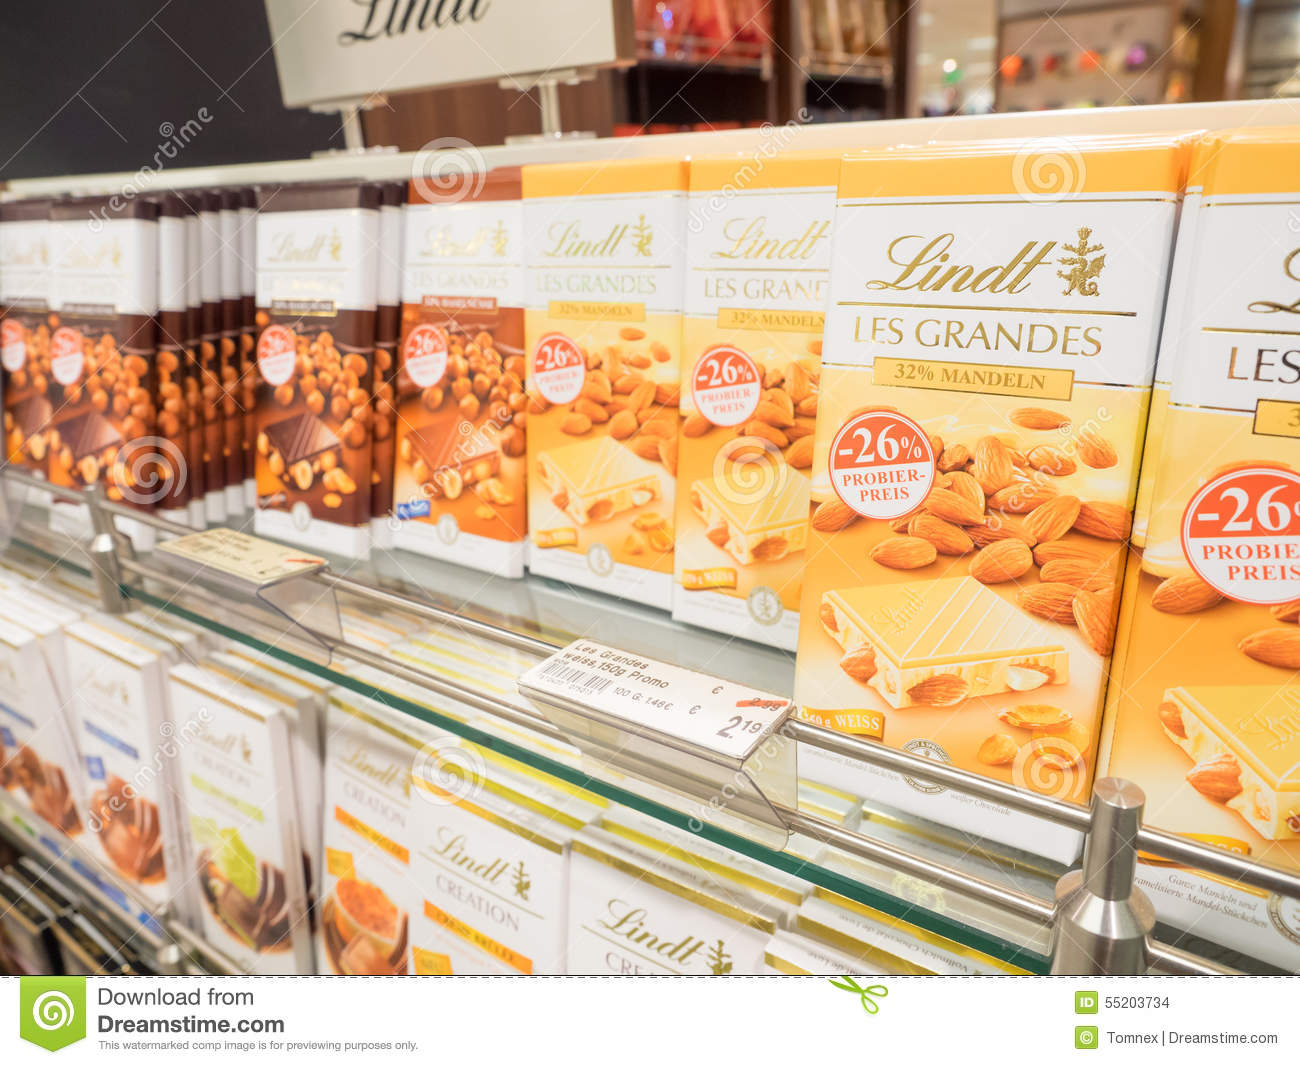 Lindt Chocolate Editorial Stock Image - Image: 55203734